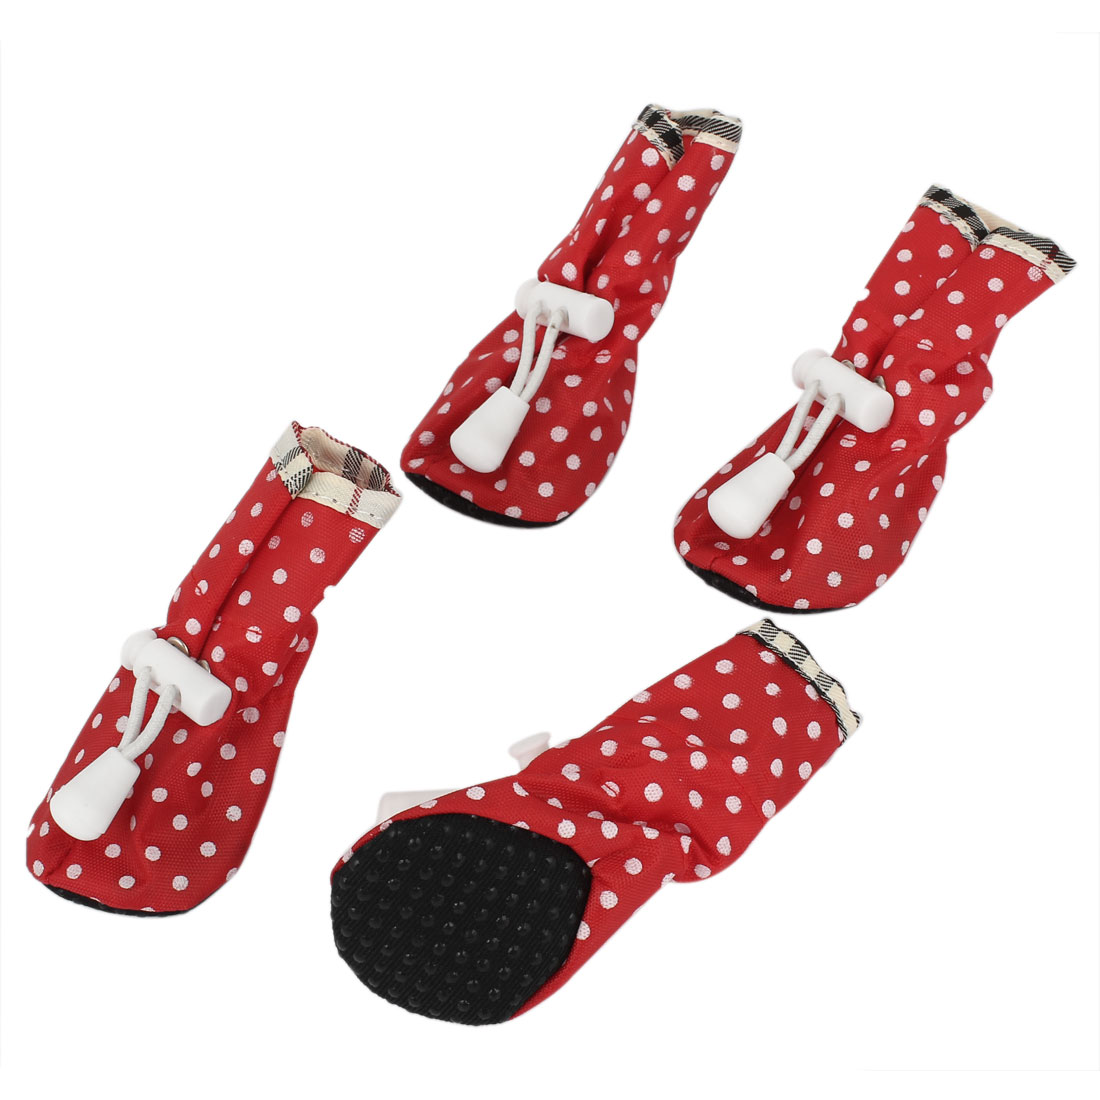 2 Pair Adjustable String Pet Dog Doggy Waterproof Rain Shoes Boots Booties Red White Size XXS